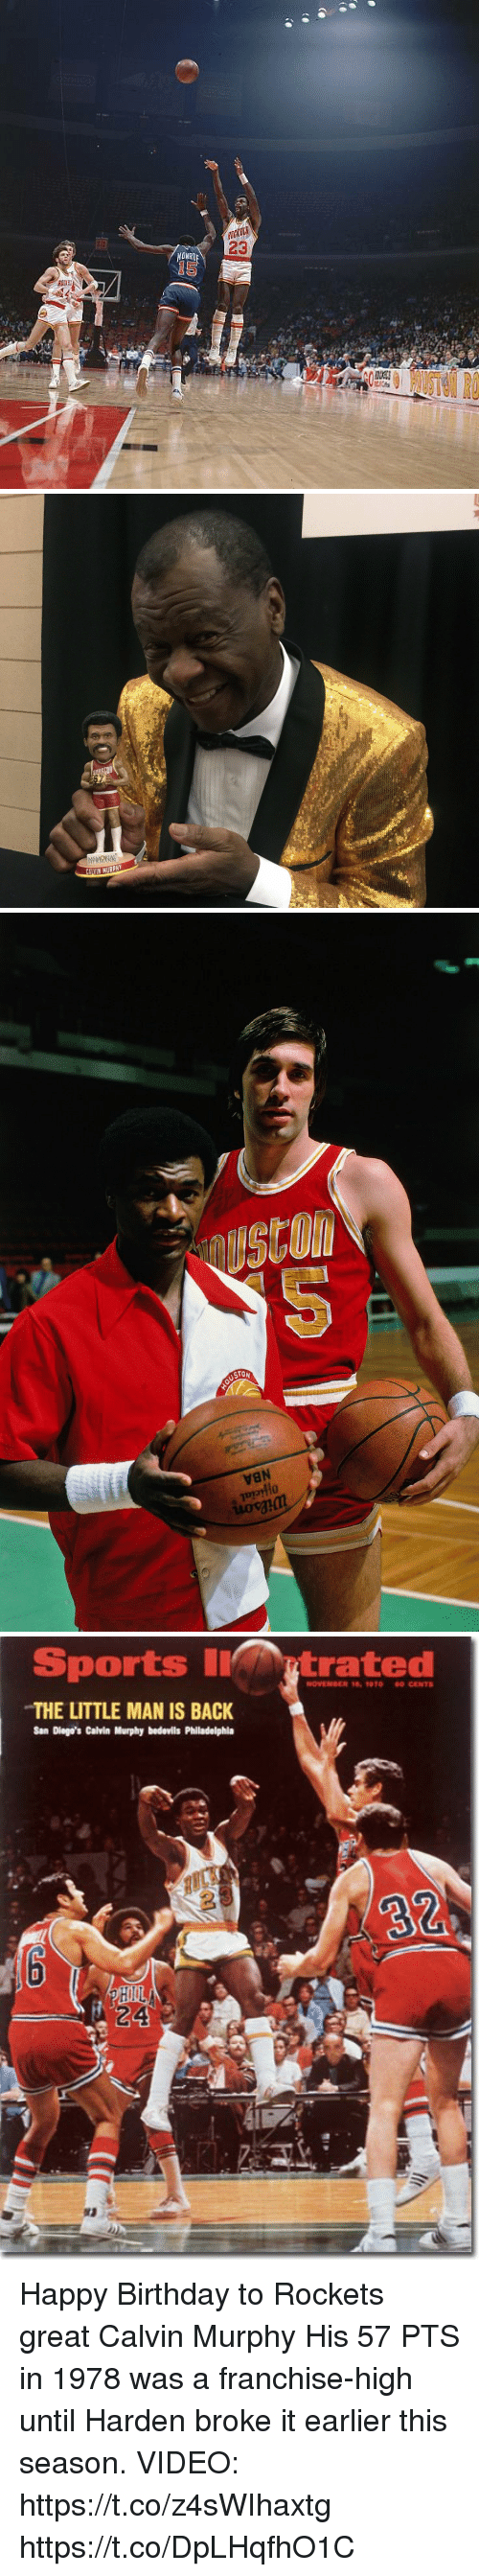 Birthday, Memes, and Sports: 23  NOWRO   NStOi  CTON  VBN  10  uovam   Sports Iytrated  THE LITTLE MAN IS BACK  San Diego's Calvin Murphy bedevils Philadelphla  24 Happy Birthday to Rockets great Calvin Murphy His 57 PTS in 1978 was a franchise-high until Harden broke it earlier this season.   VIDEO: https://t.co/z4sWIhaxtg https://t.co/DpLHqfhO1C